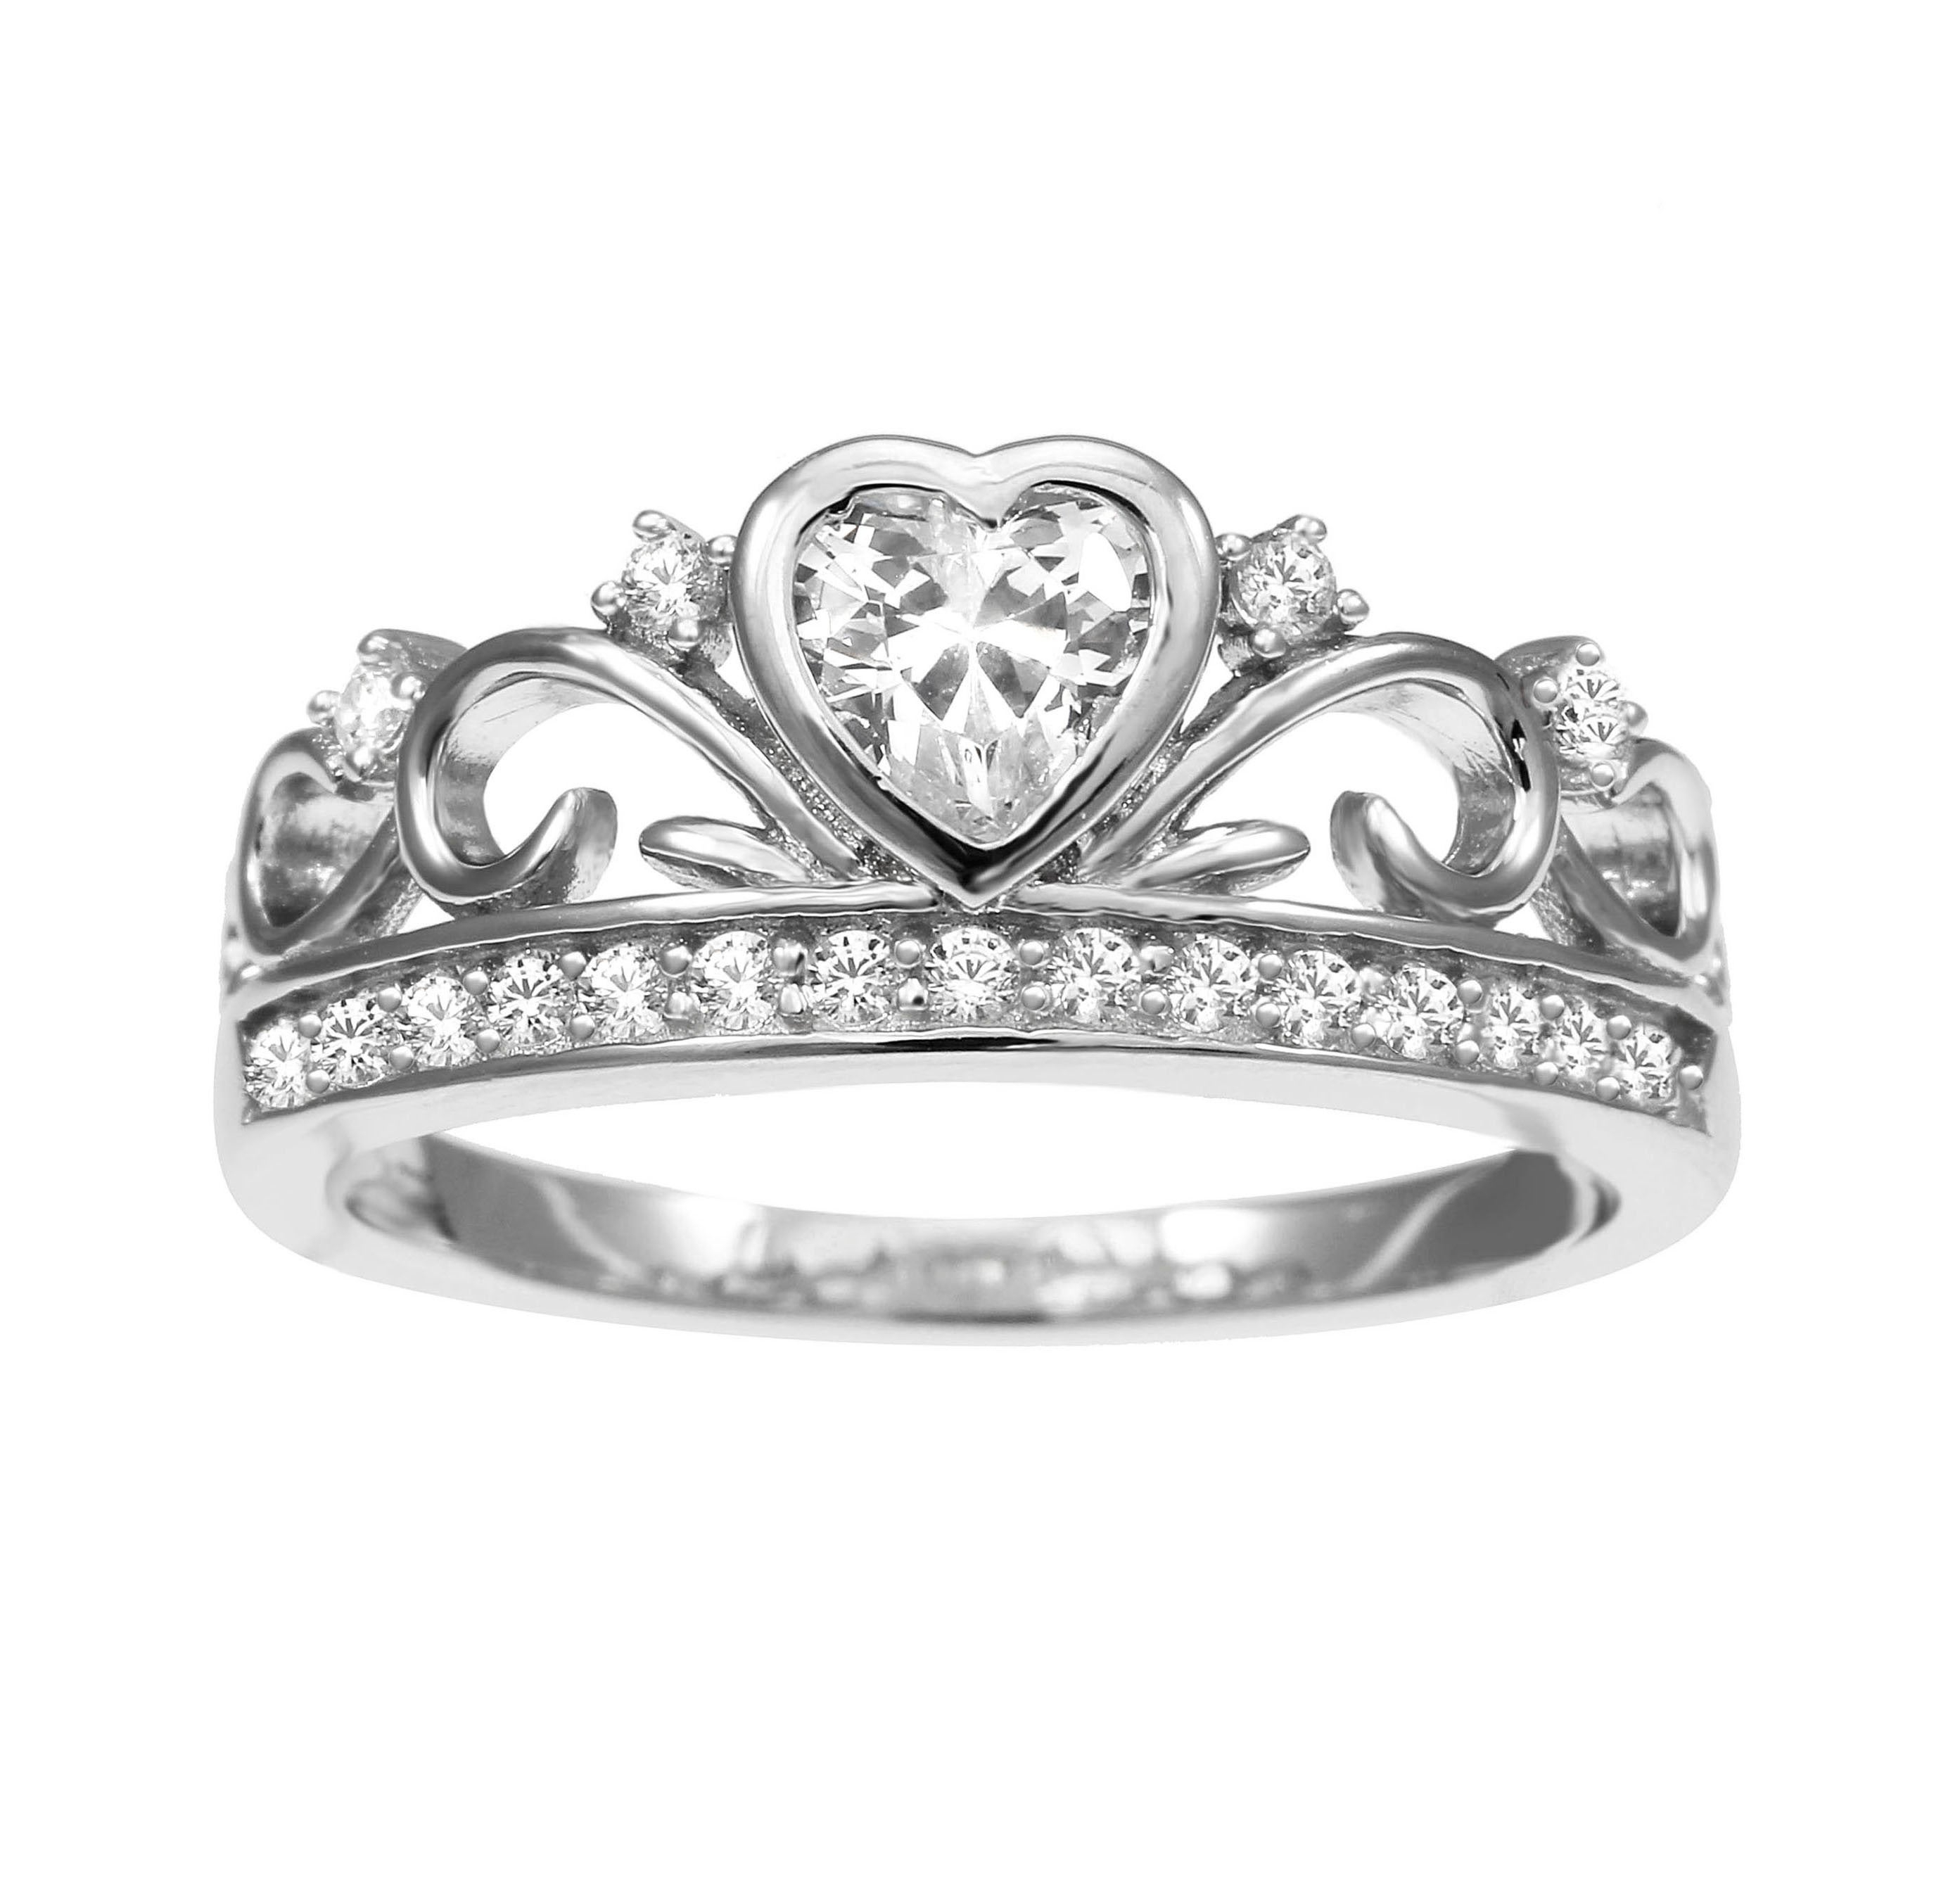 925 Sterling Silver Crown Ring,tiara Ring,silver Heart Ring,silver Tiara Pertaining To 2017 Polished Crown Rings (View 3 of 25)